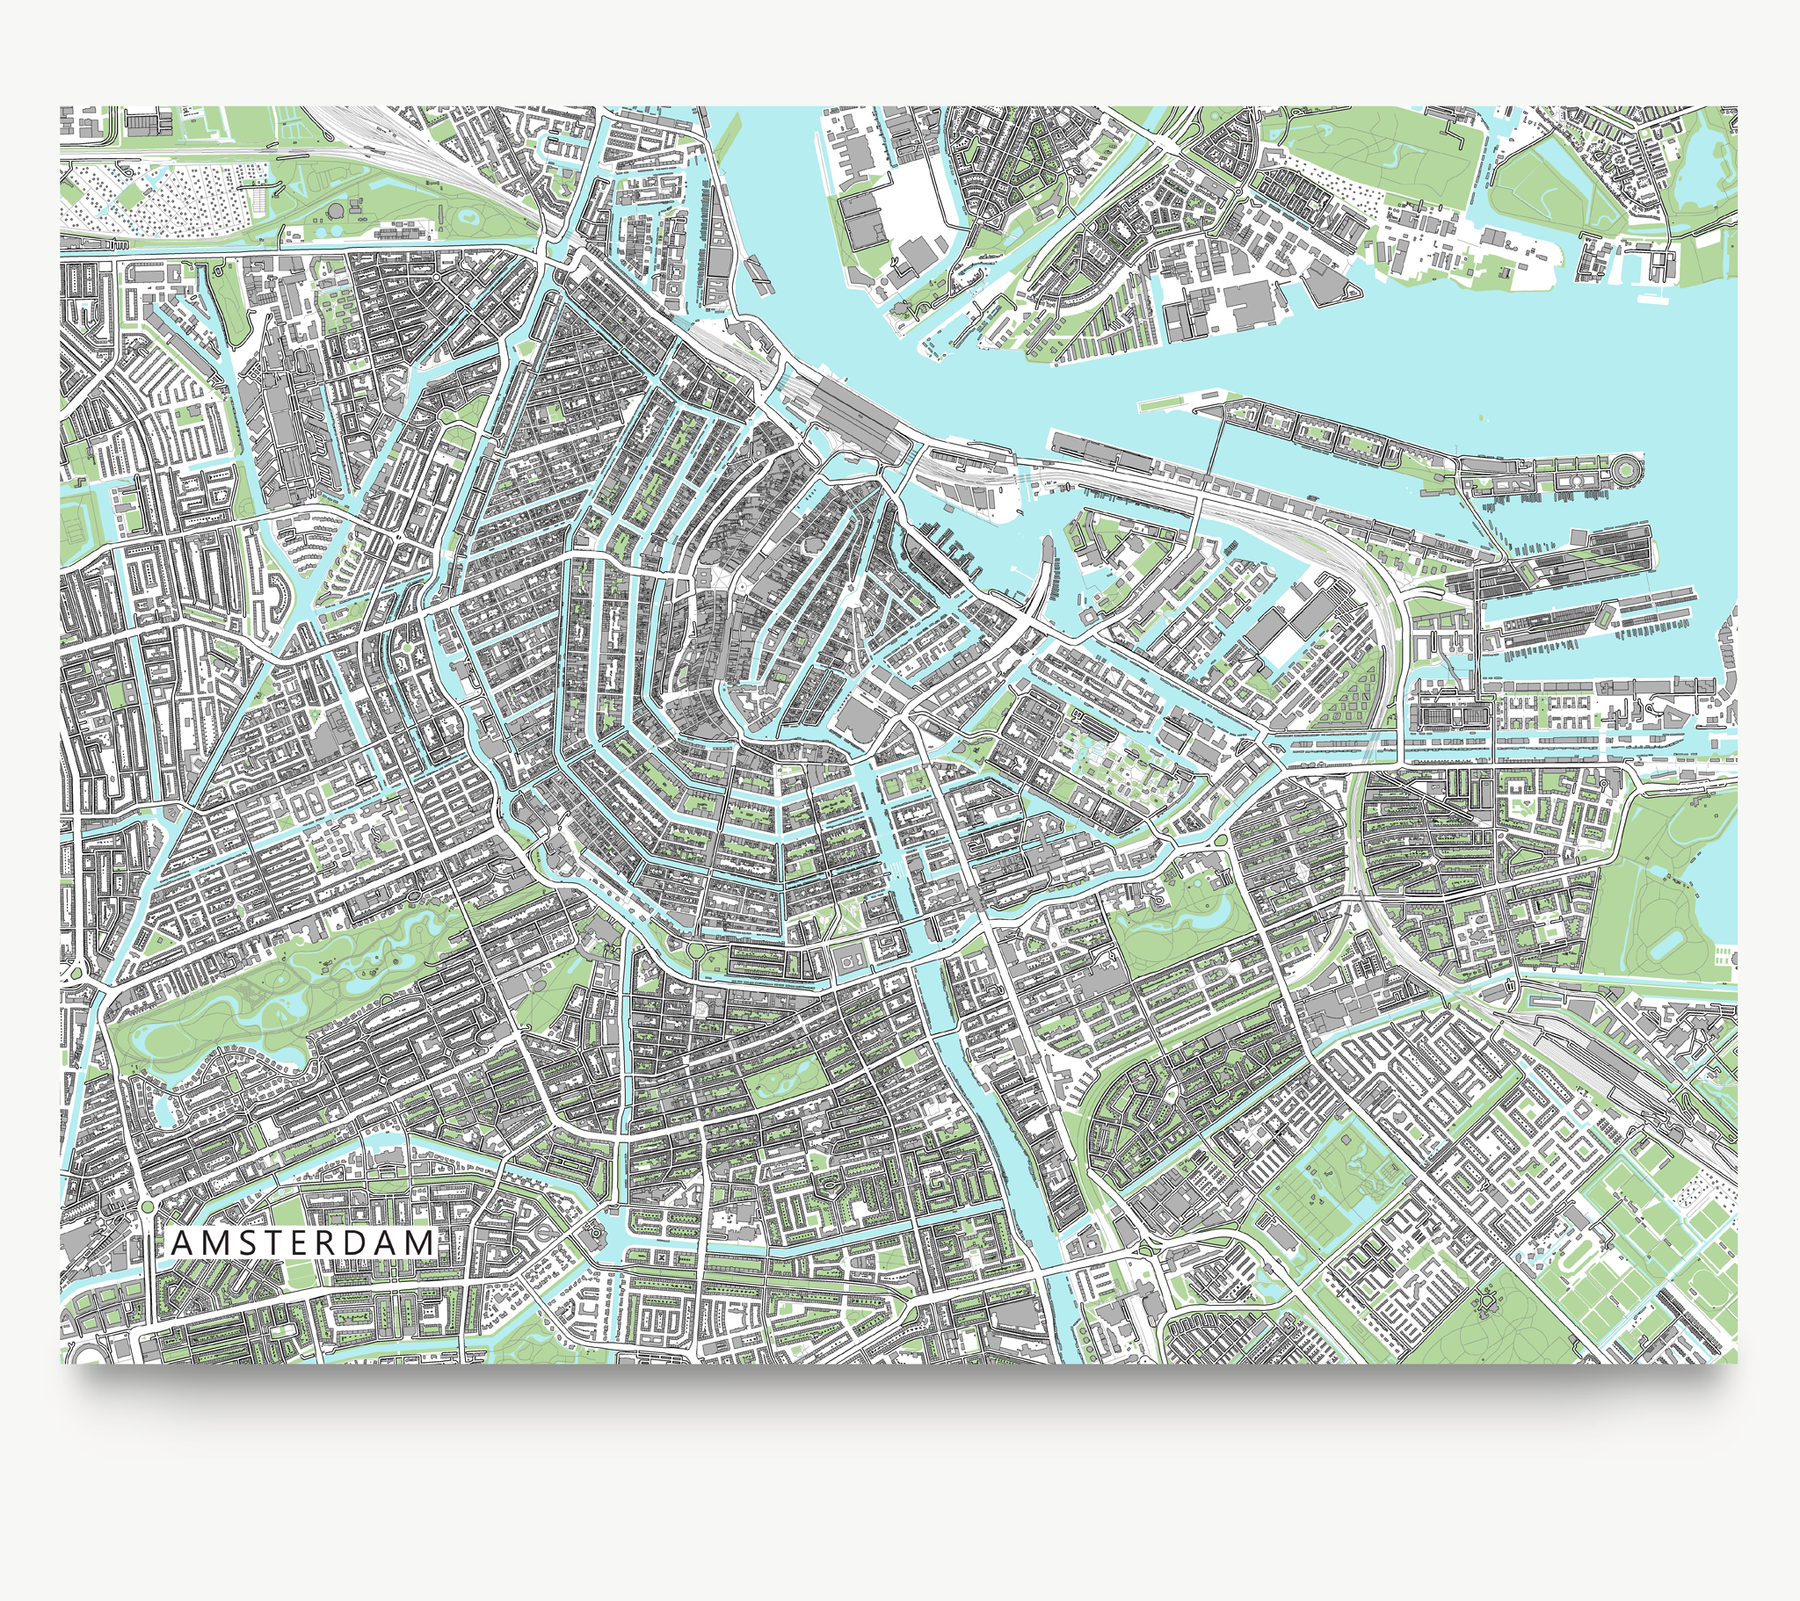 Amsterdam, Netherlands map art print with city streets and buildings from Maps As Art.